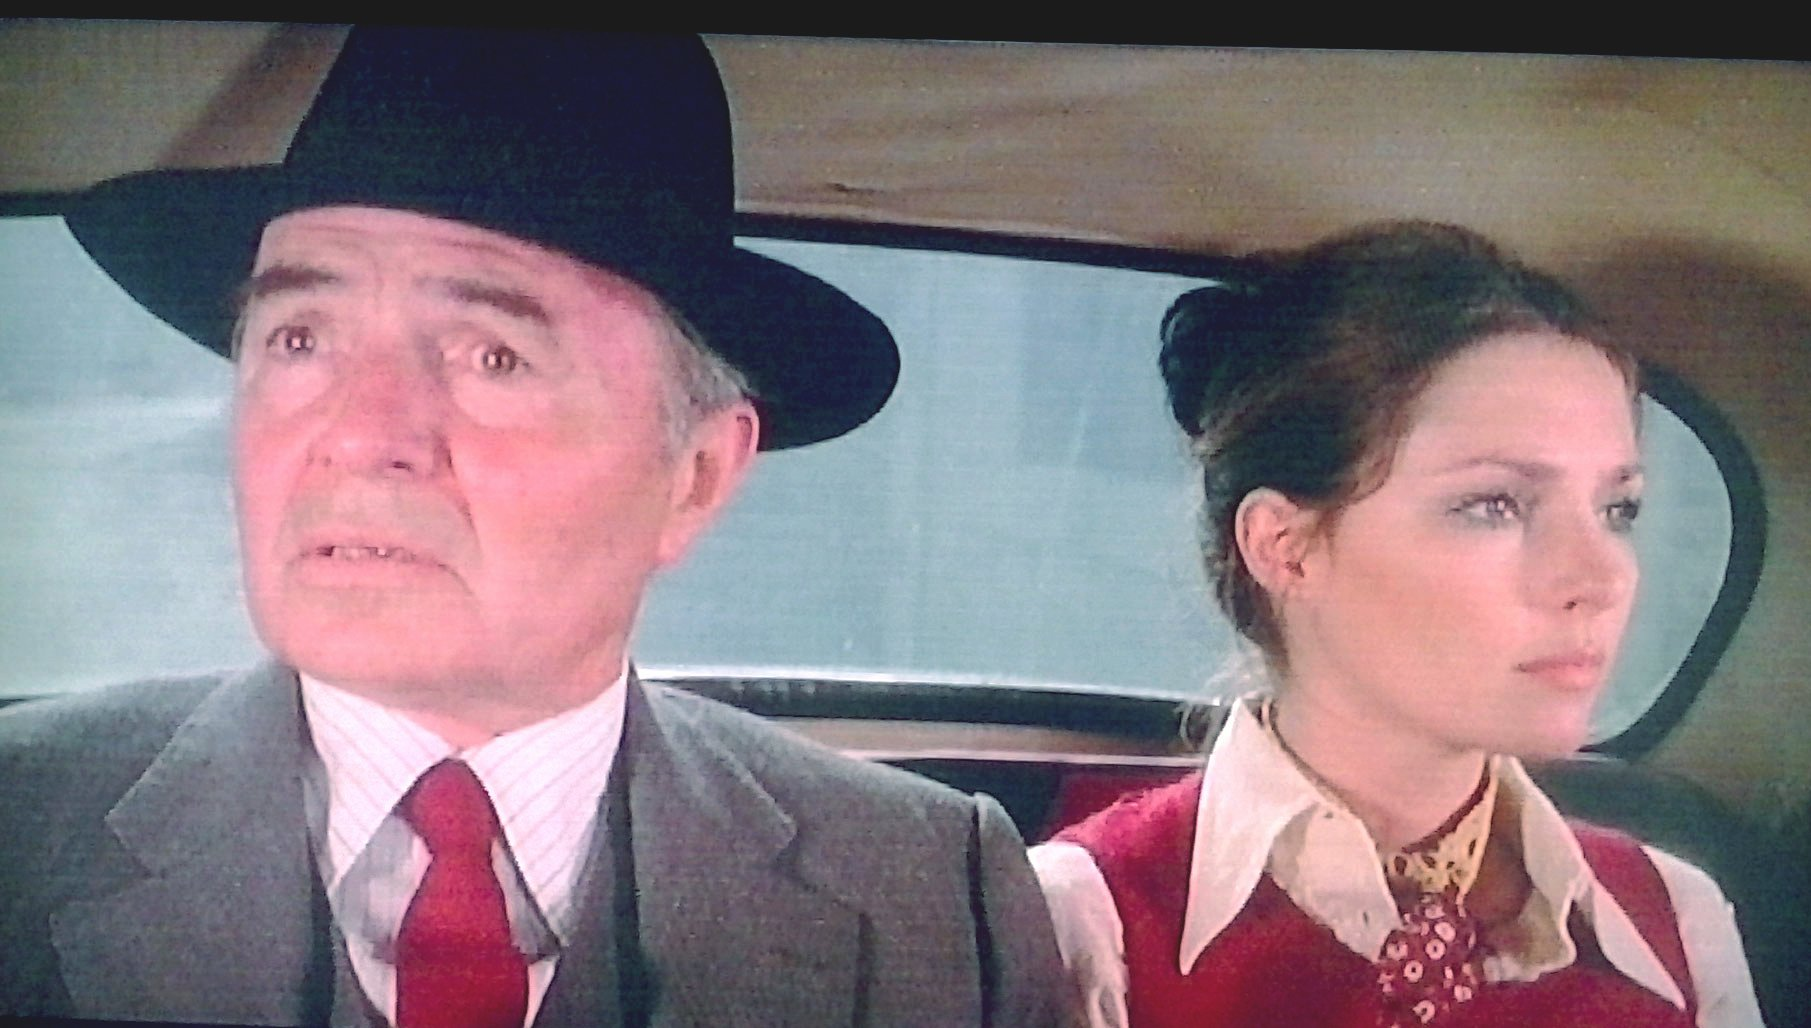 """James Mason and Jennifer O'Neill in a frame of """"People of respect"""" (Zampa, 1975). 